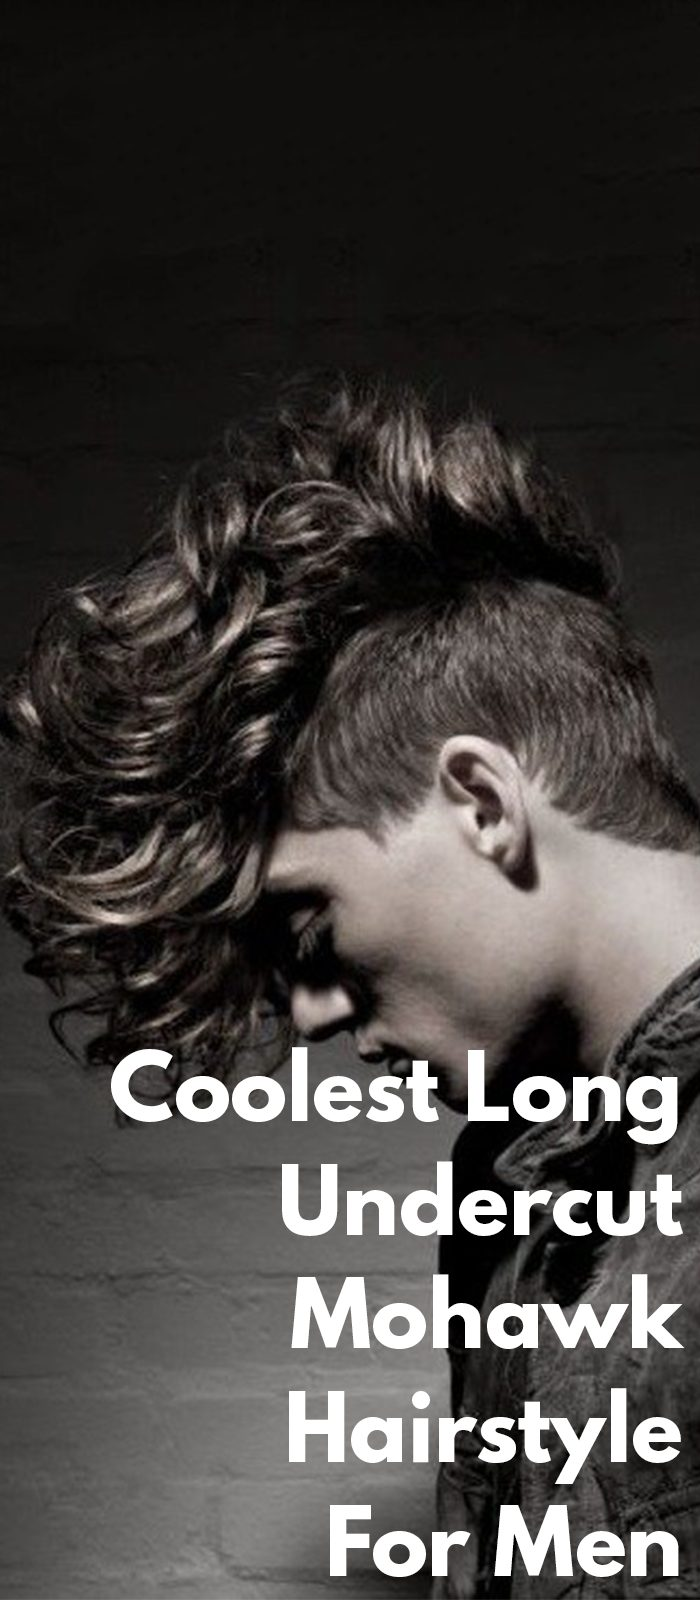 Coolest Long Undercut Mohawk Hairstyle For Men